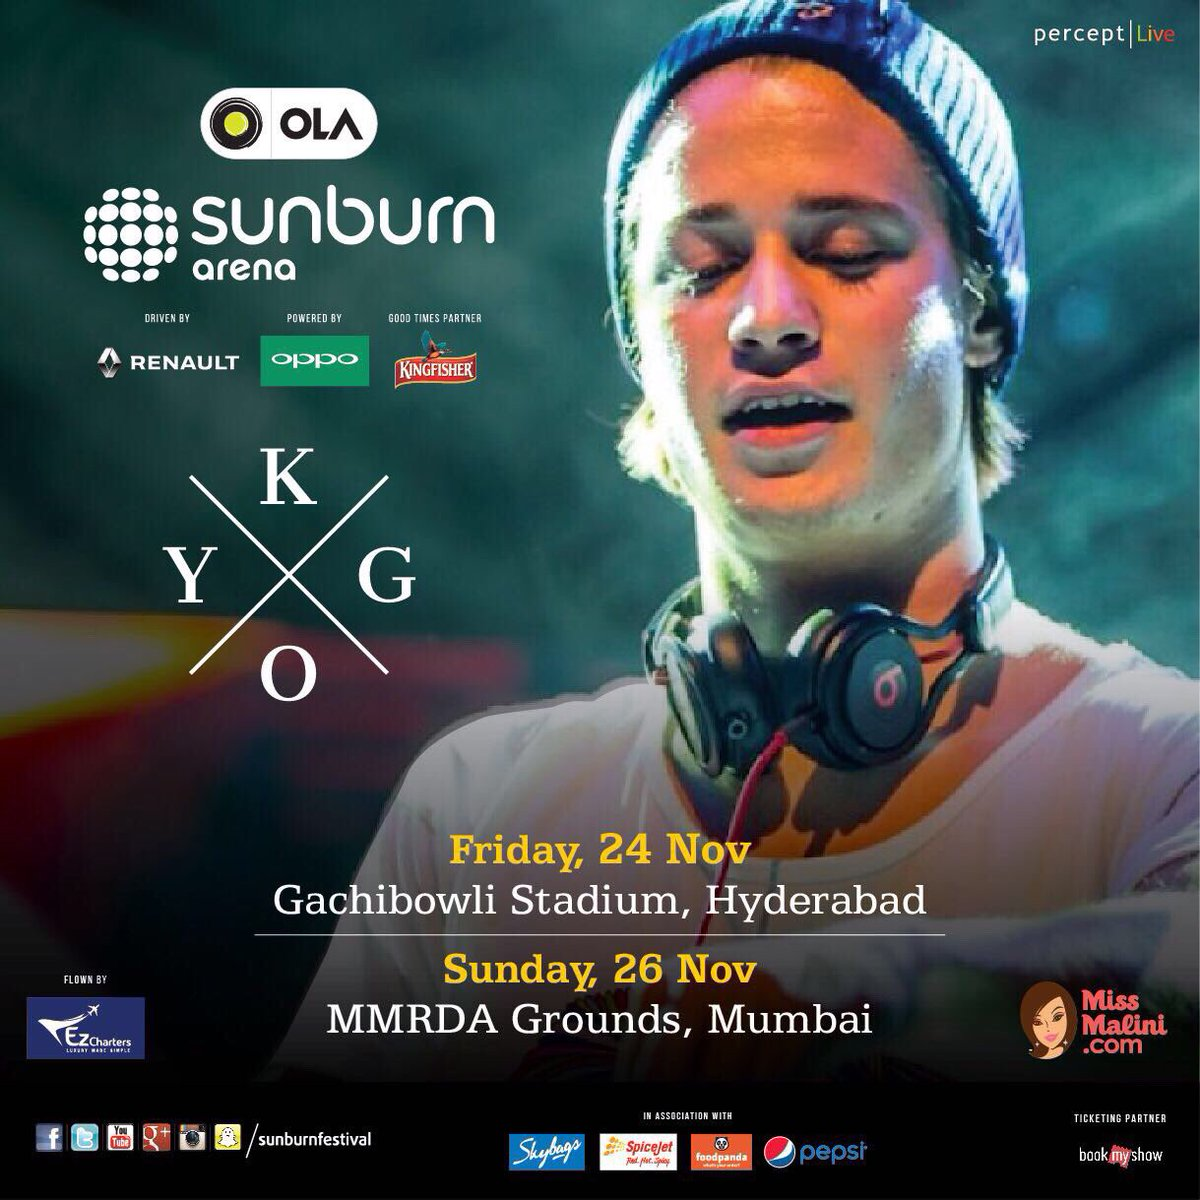 A week away till @KygoMusic is in #Mumbai 👯 so kicked for #OLASunburnArena 🙌 Get your tickets here https://t.co/3y0eVhGKkH & see y'all in the arena 🦋  #KygoIndia@SunburnFestival